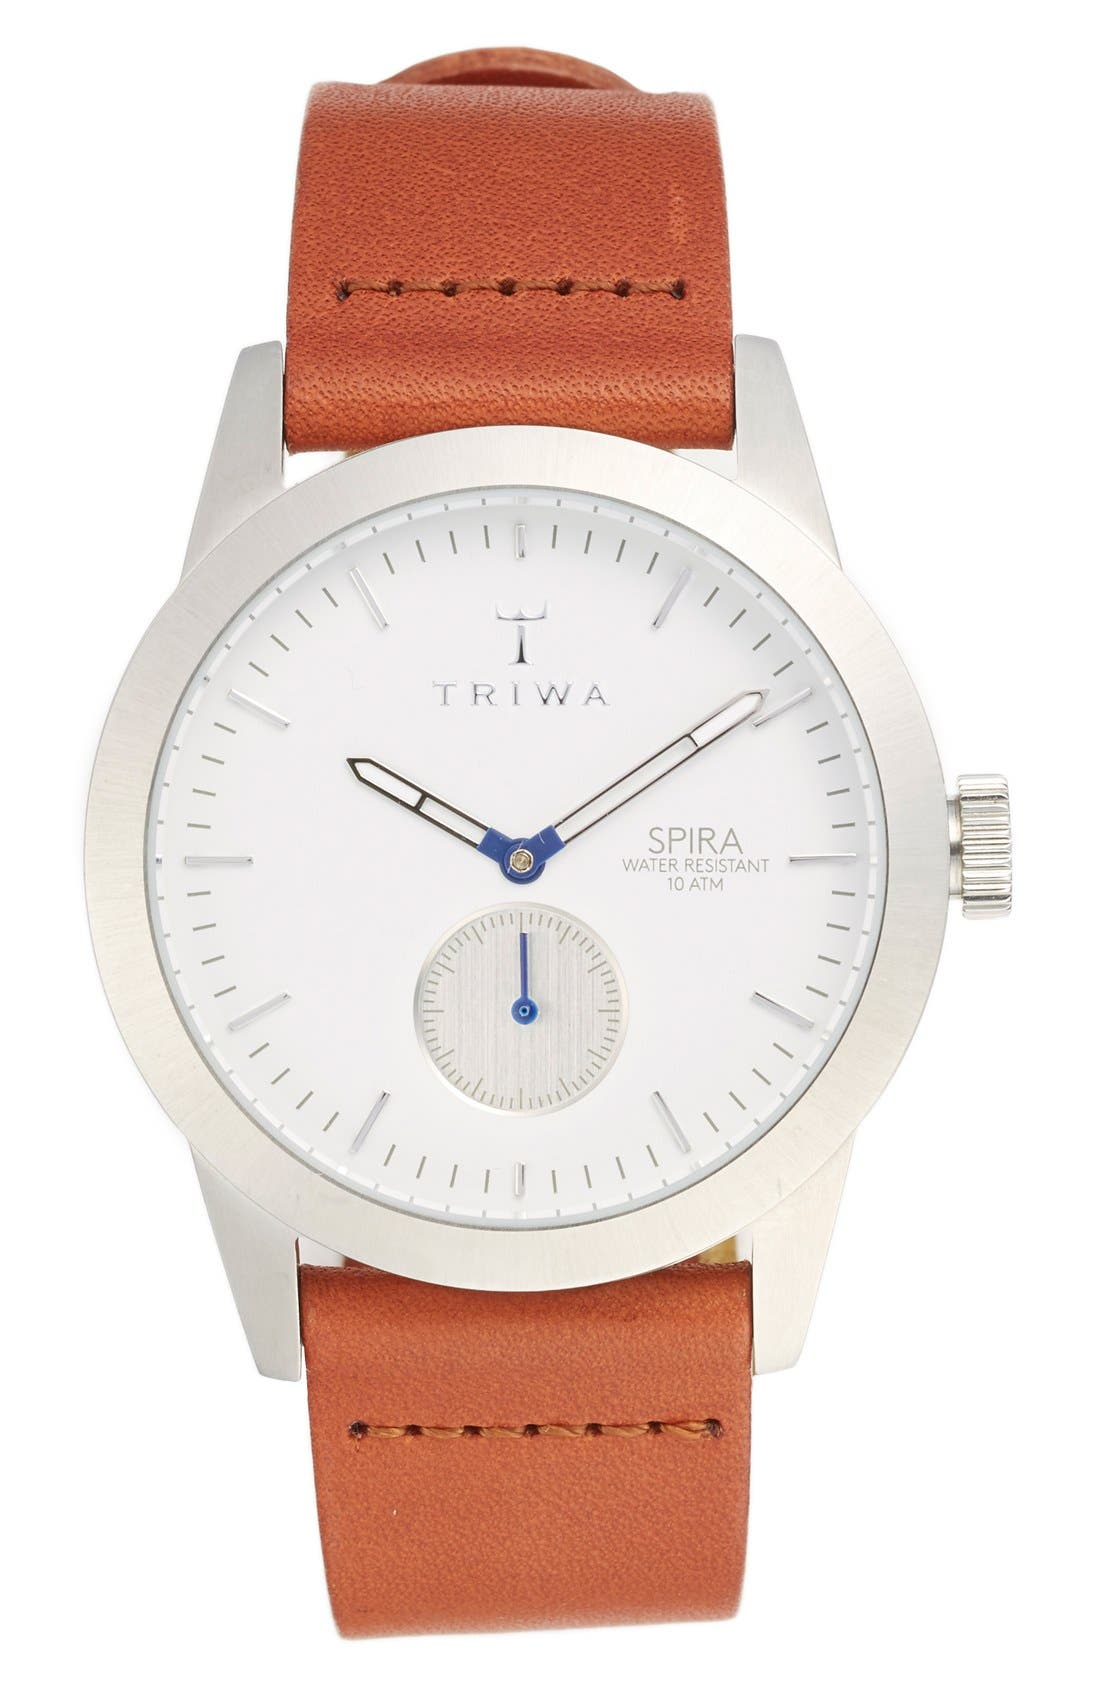 TRIWA Spira Leather Strap Watch, 38mm